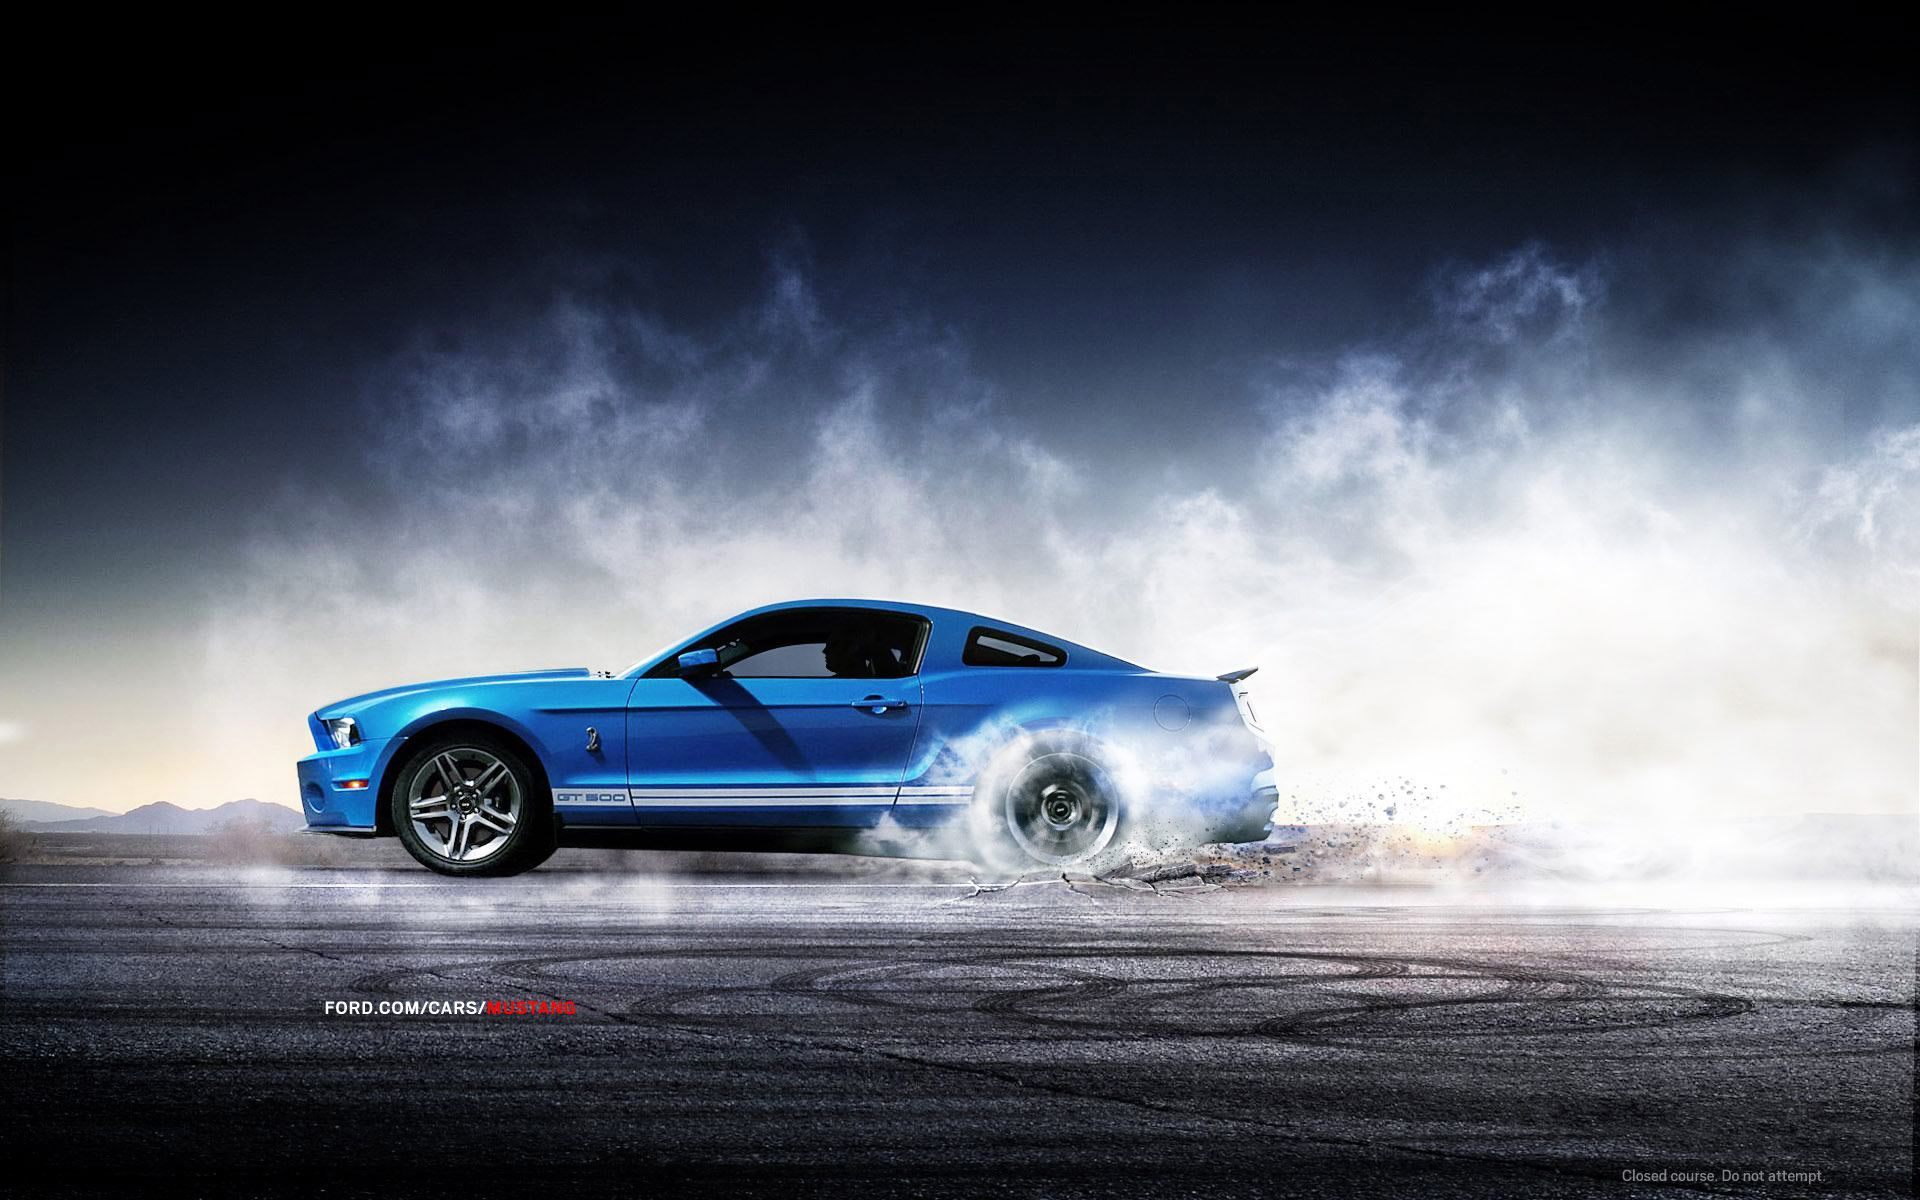 Shelby Mustang Wallpaper Photo C39 Cars Ford Mustang Shelby Gt